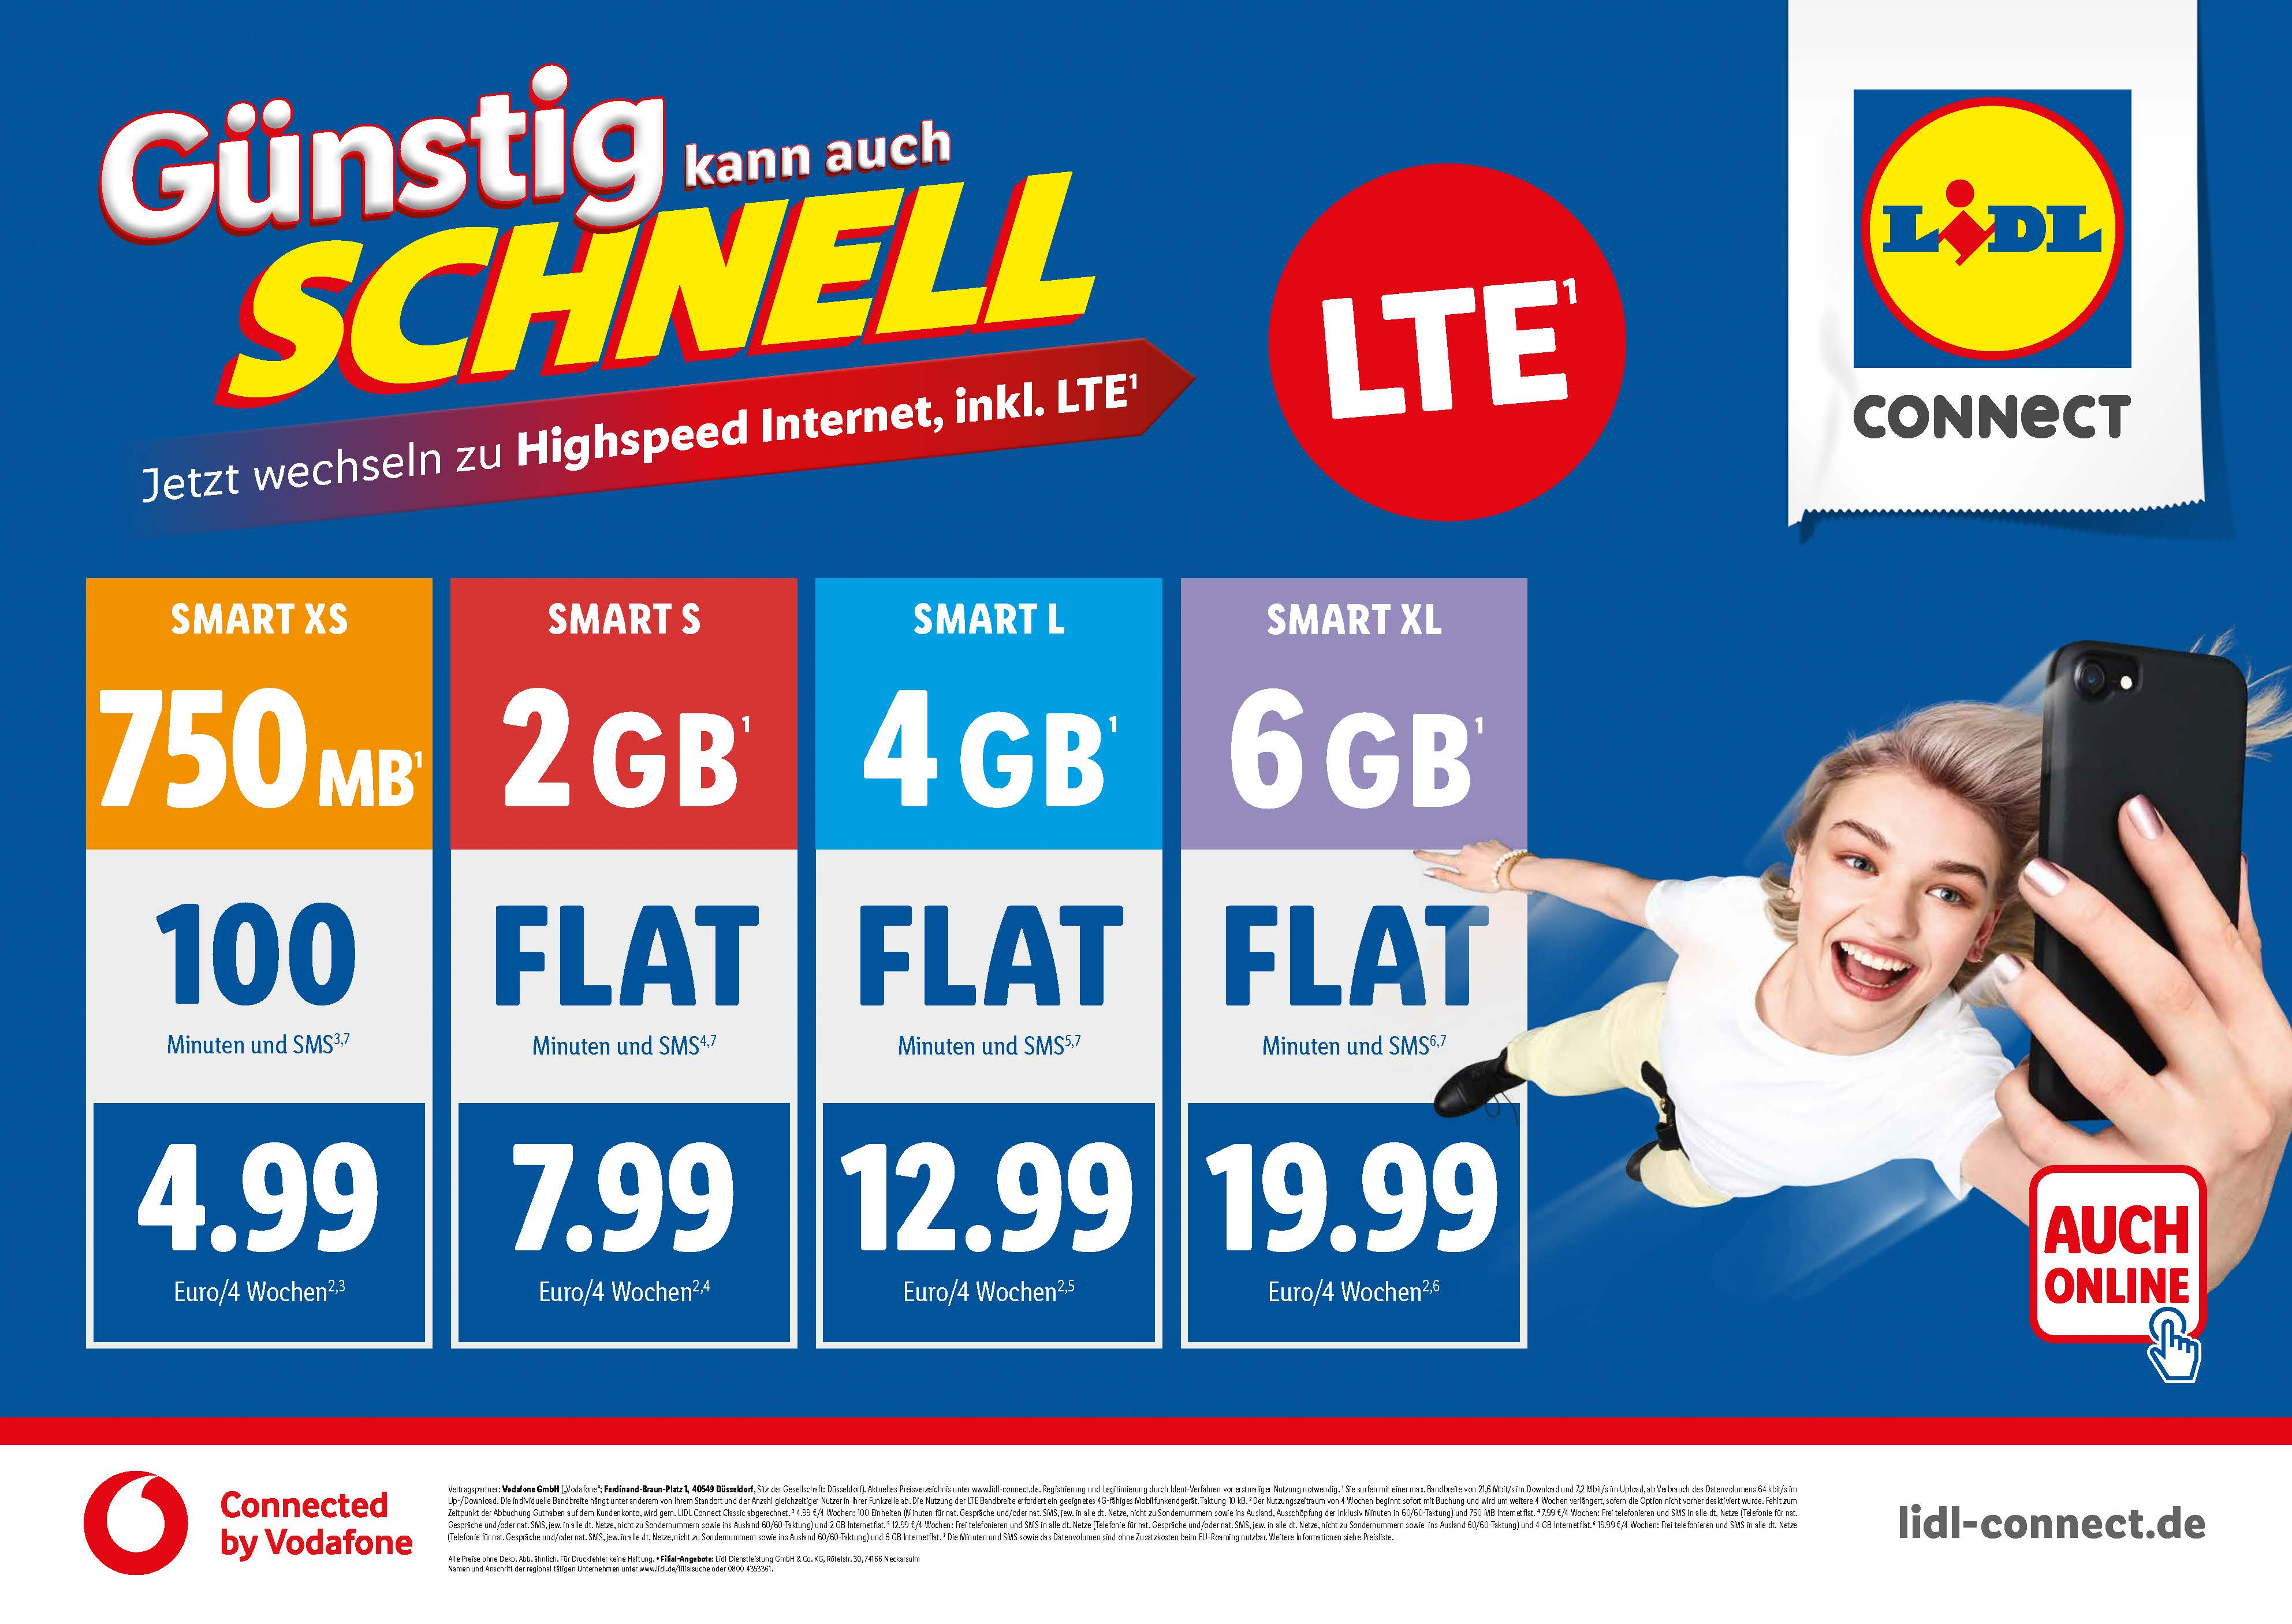 Lte Bei Lidl Connect Connected By Vodafone Schnell